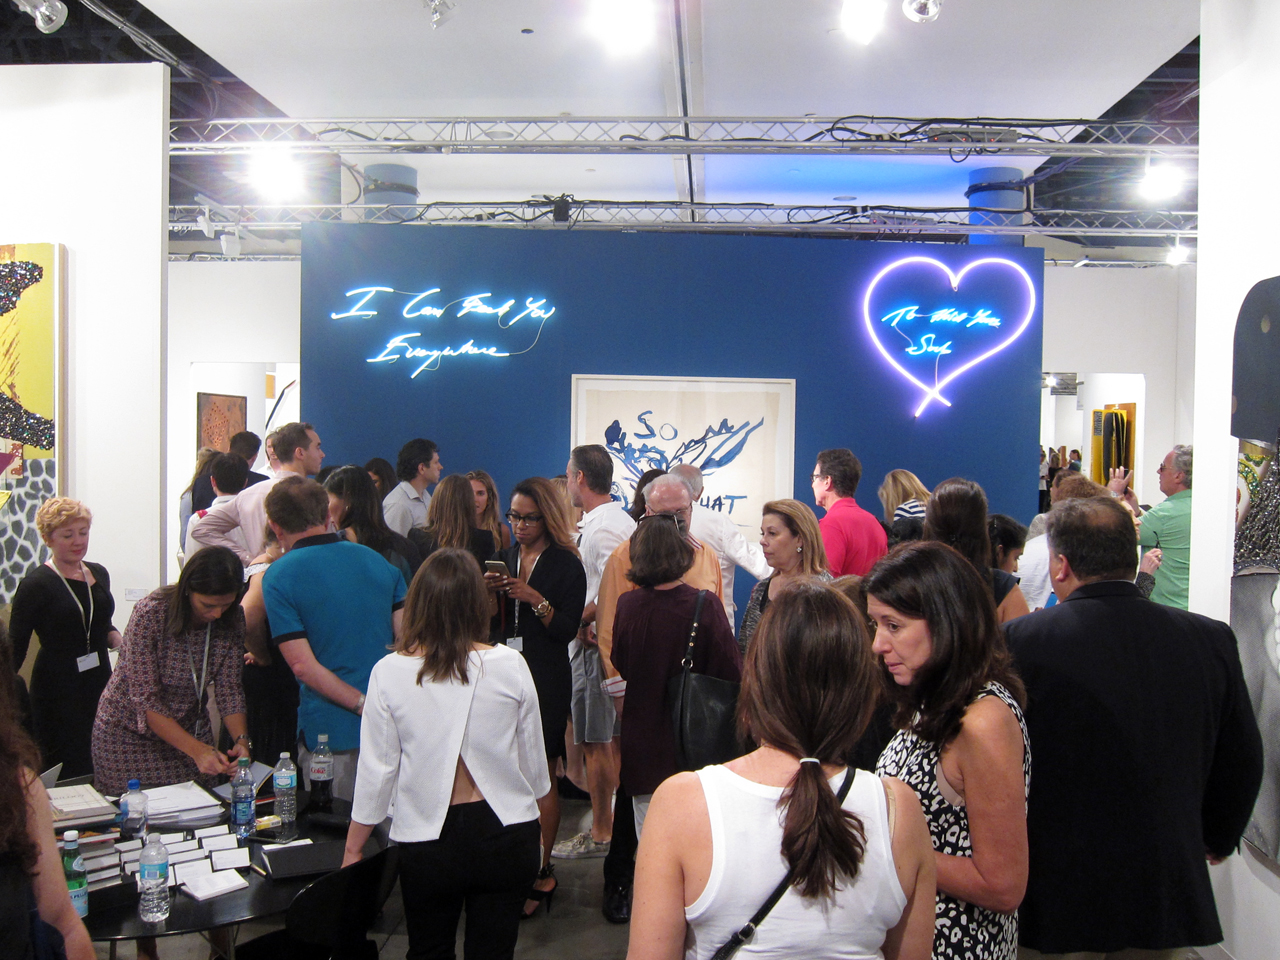 Lehmann Maupin's booth was literally lit by Tracey Emin's work, but it was also lit (all photos by the author for Hyperallergic unless otherwise noted)